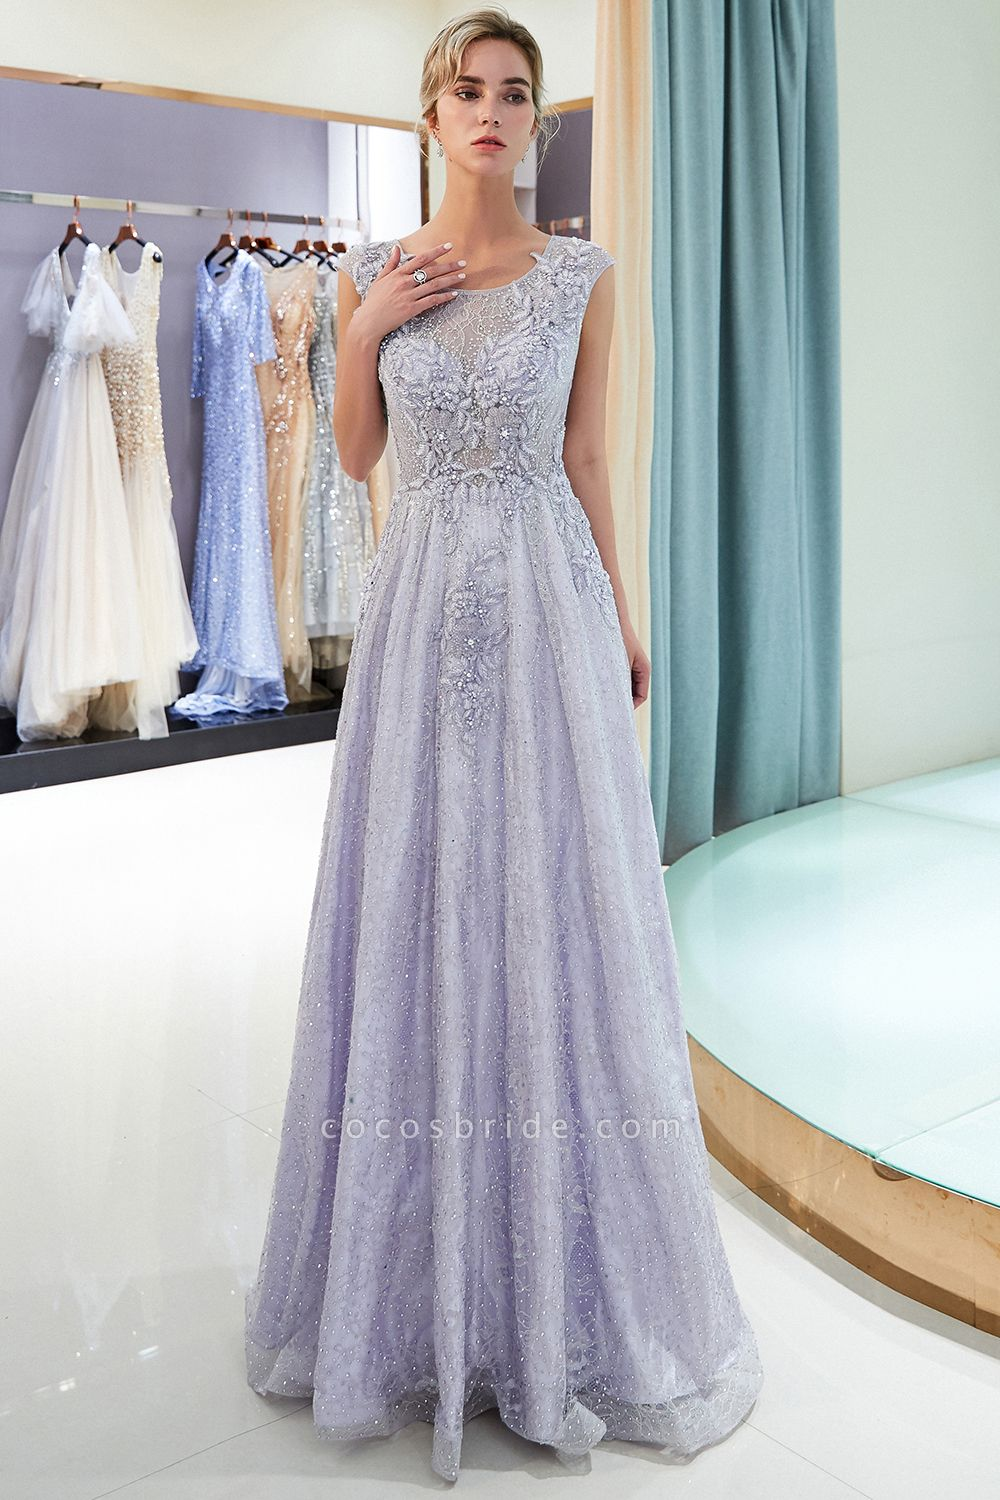 Excellent Jewel Tulle A-line Prom Dress